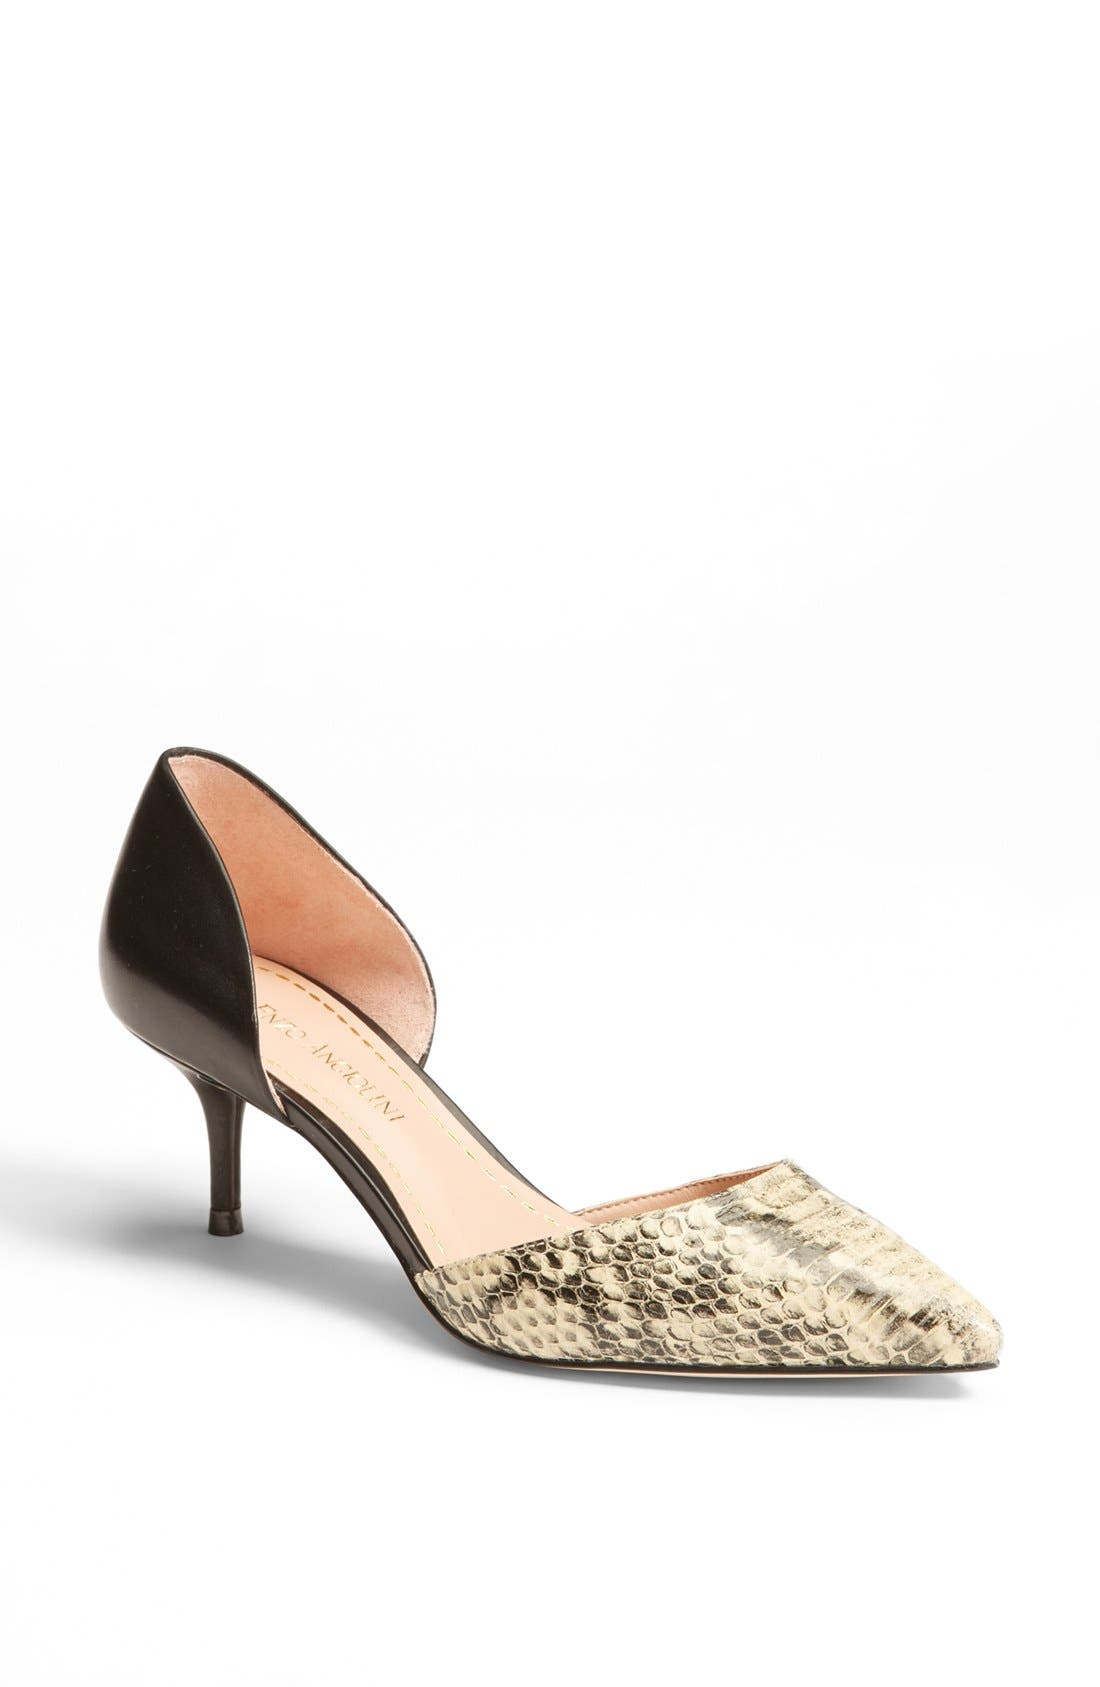 'Gabrino' Pump,                         Main,                         color, Ivory Snake